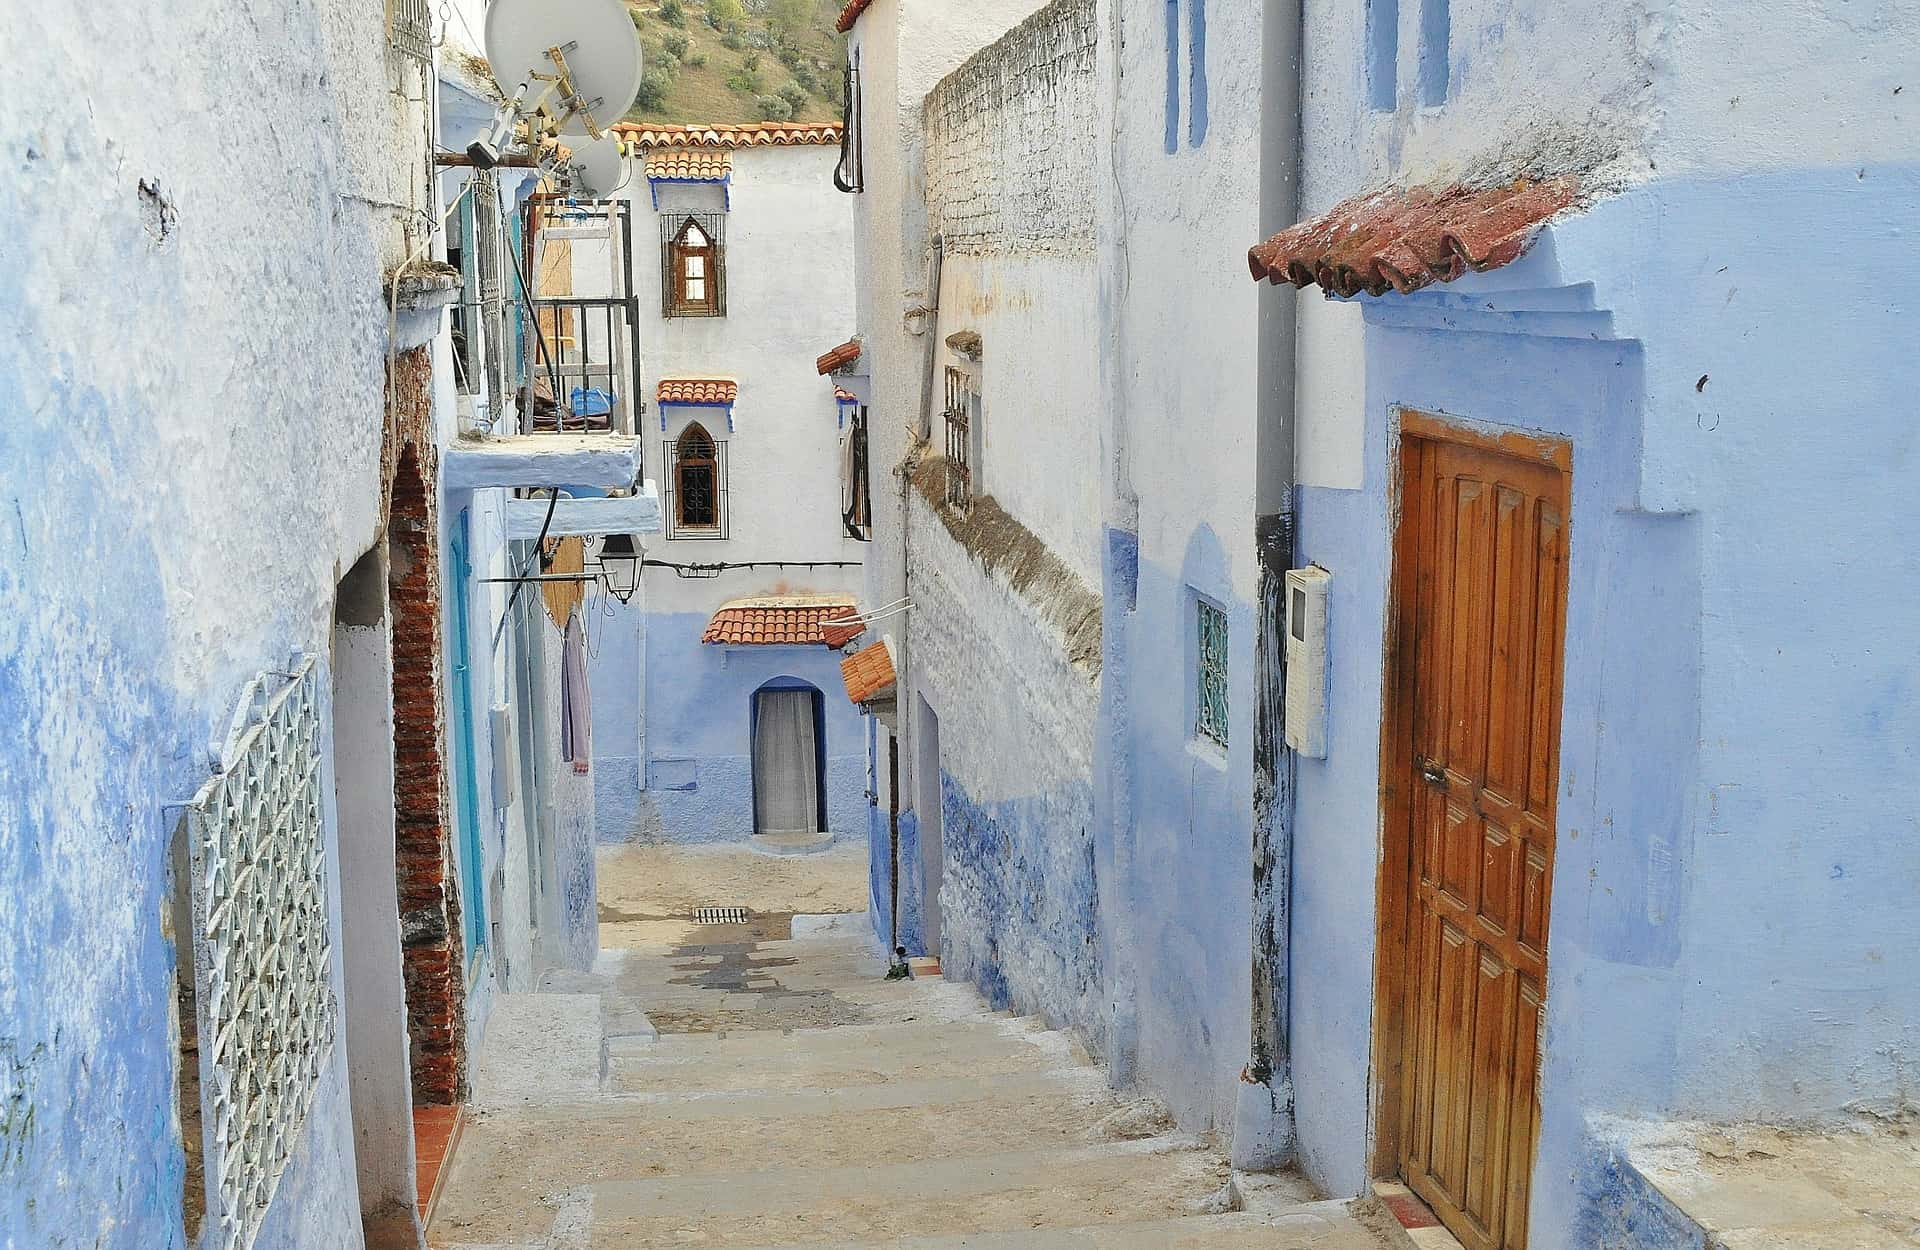 Chefchaouen Morocco Blue City Alley 2